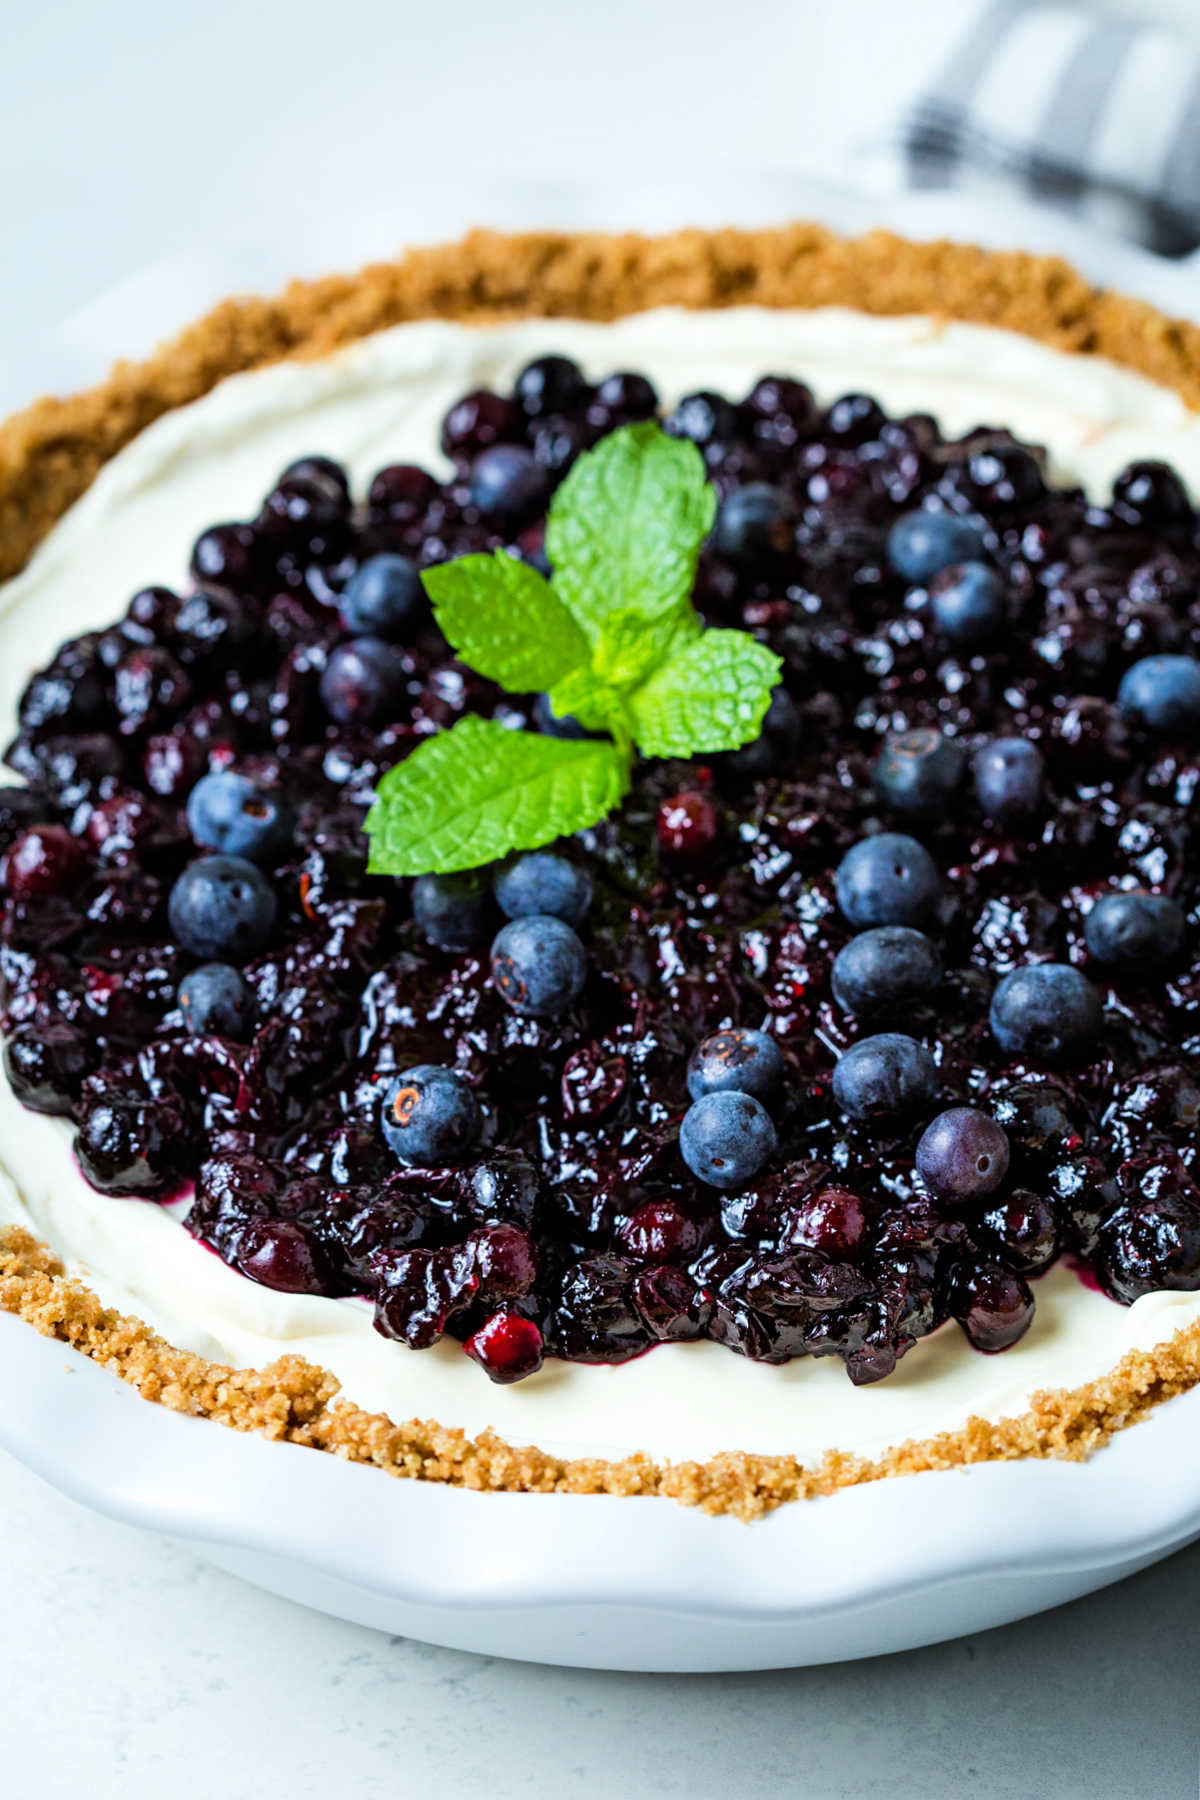 a no bake blueberry cheesecake in a white pie plate with a mint sprig garnish.